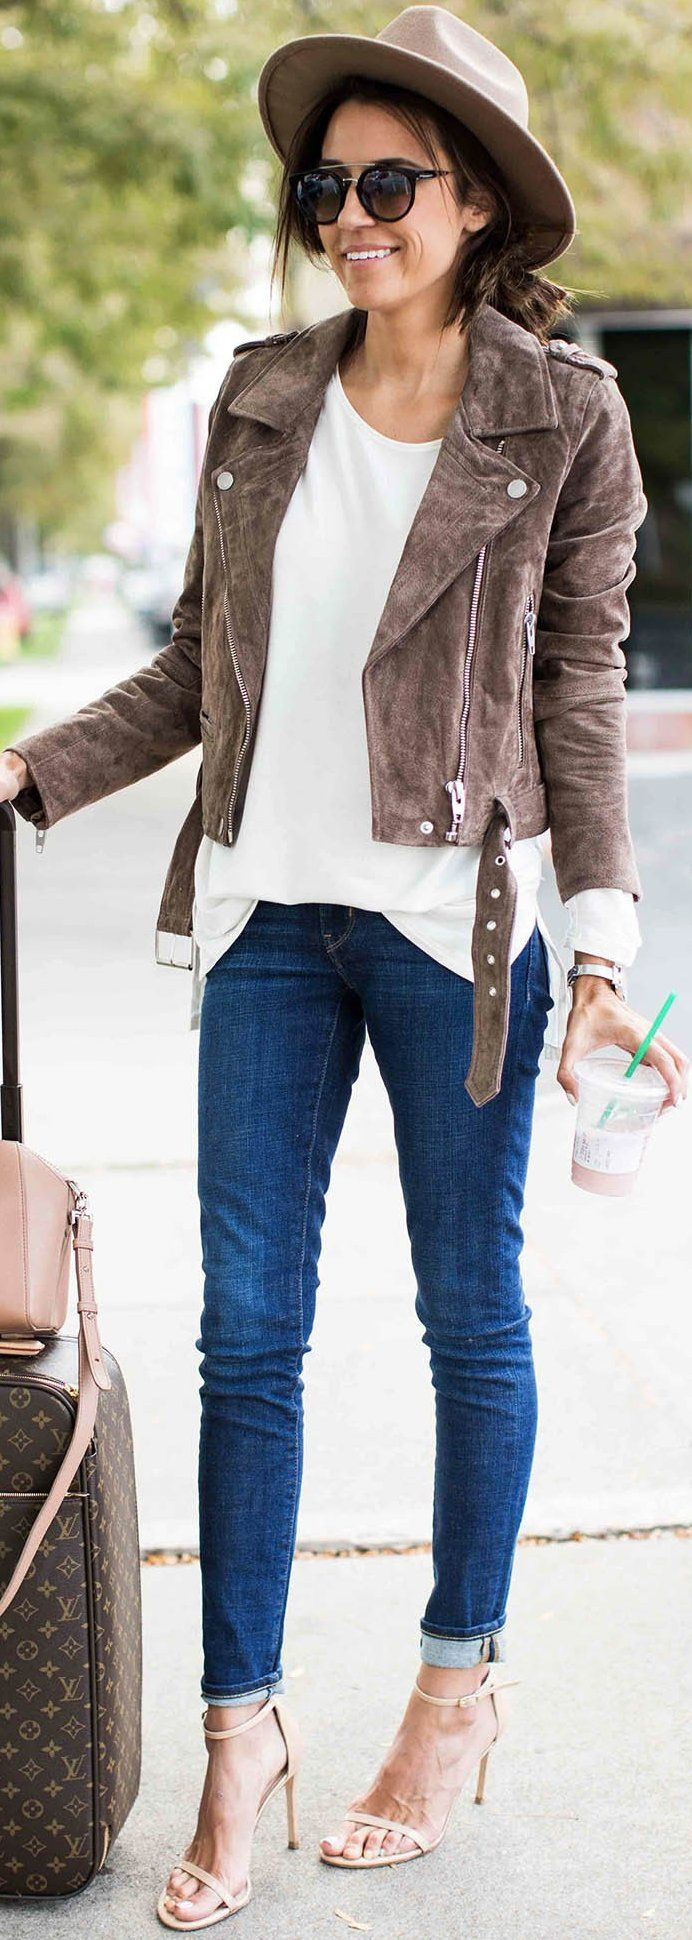 #fall #trending #outfits   Suede Jacket + White Tee + Jeans